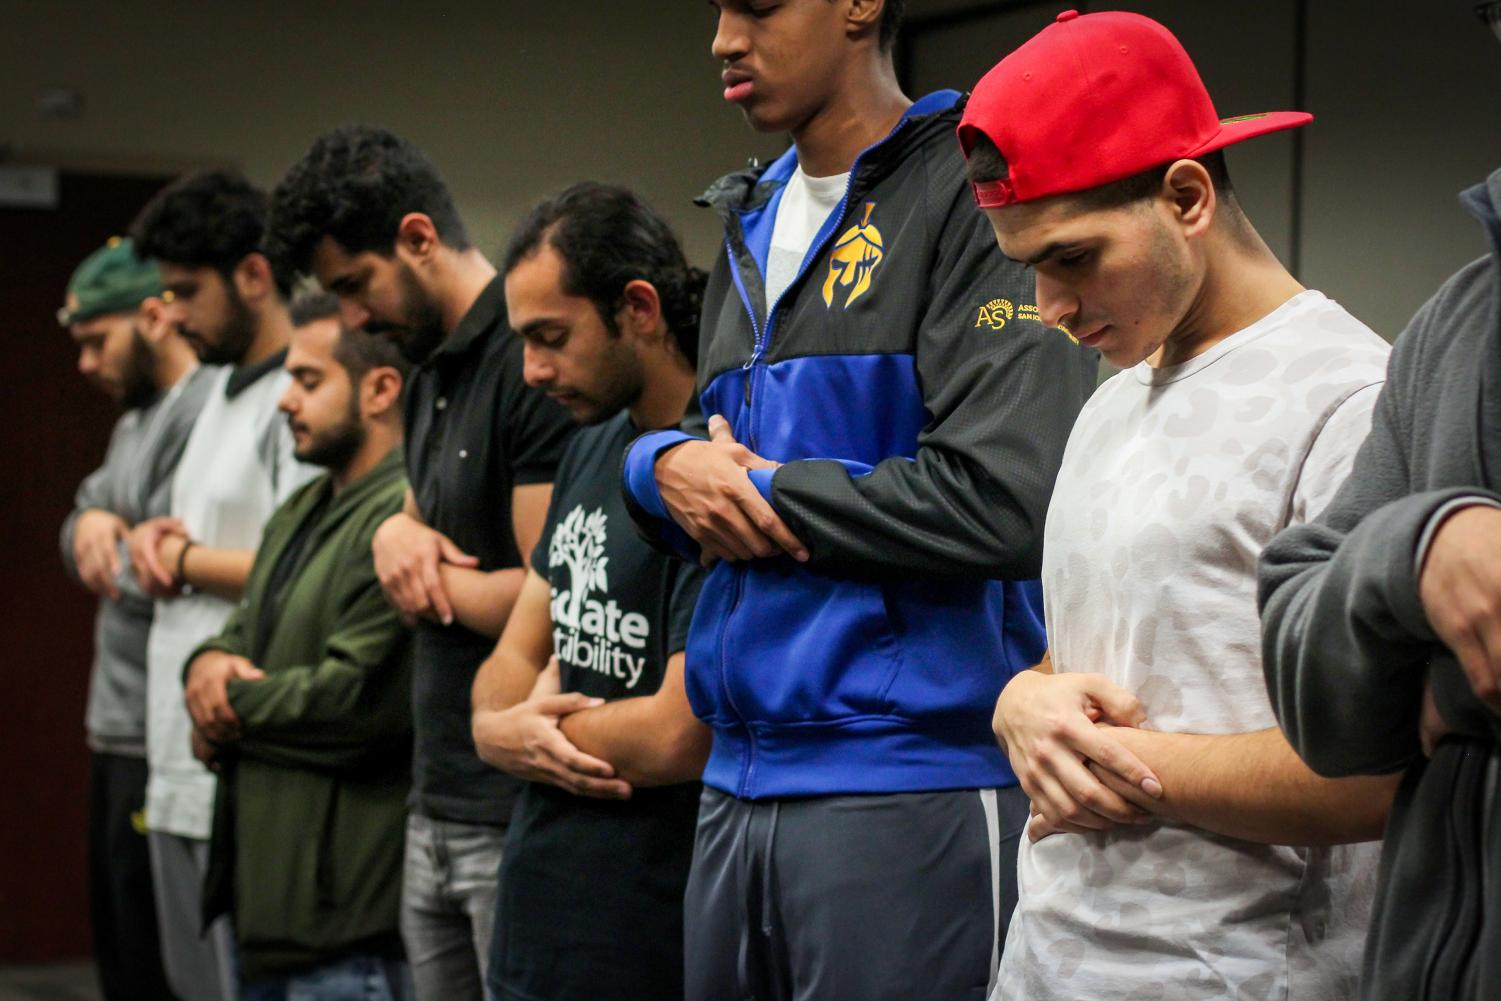 Sac State's Muslim Student Association keeps faith amid